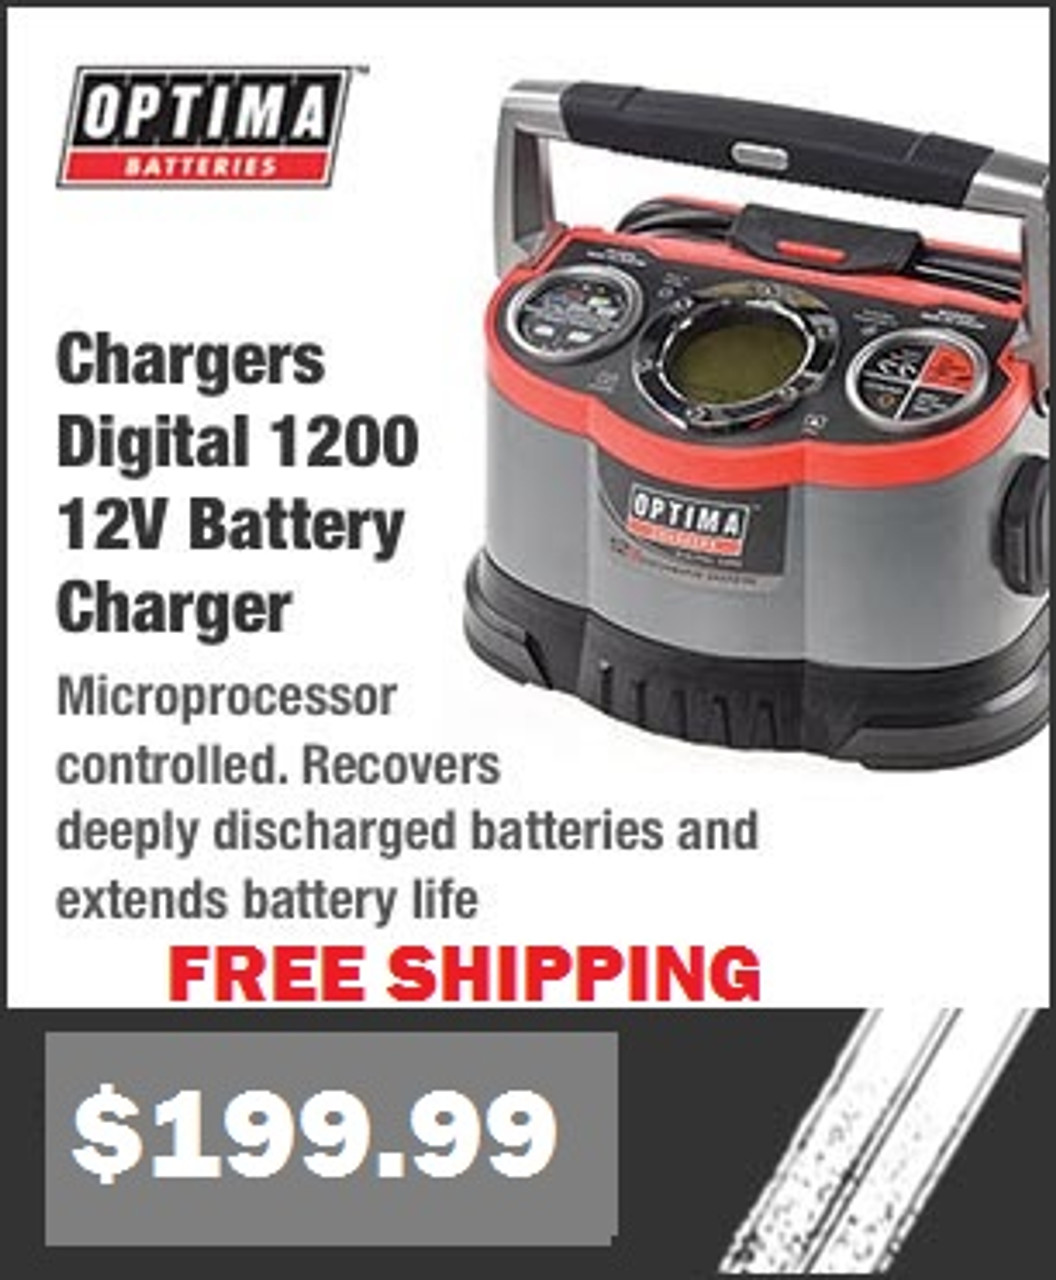 Optima Batteries 150-33508 150-34178 Digital 1200 Battery Chargers IN STOCK with FREE SHIPPING and INSTANT REBATE SAVINGS